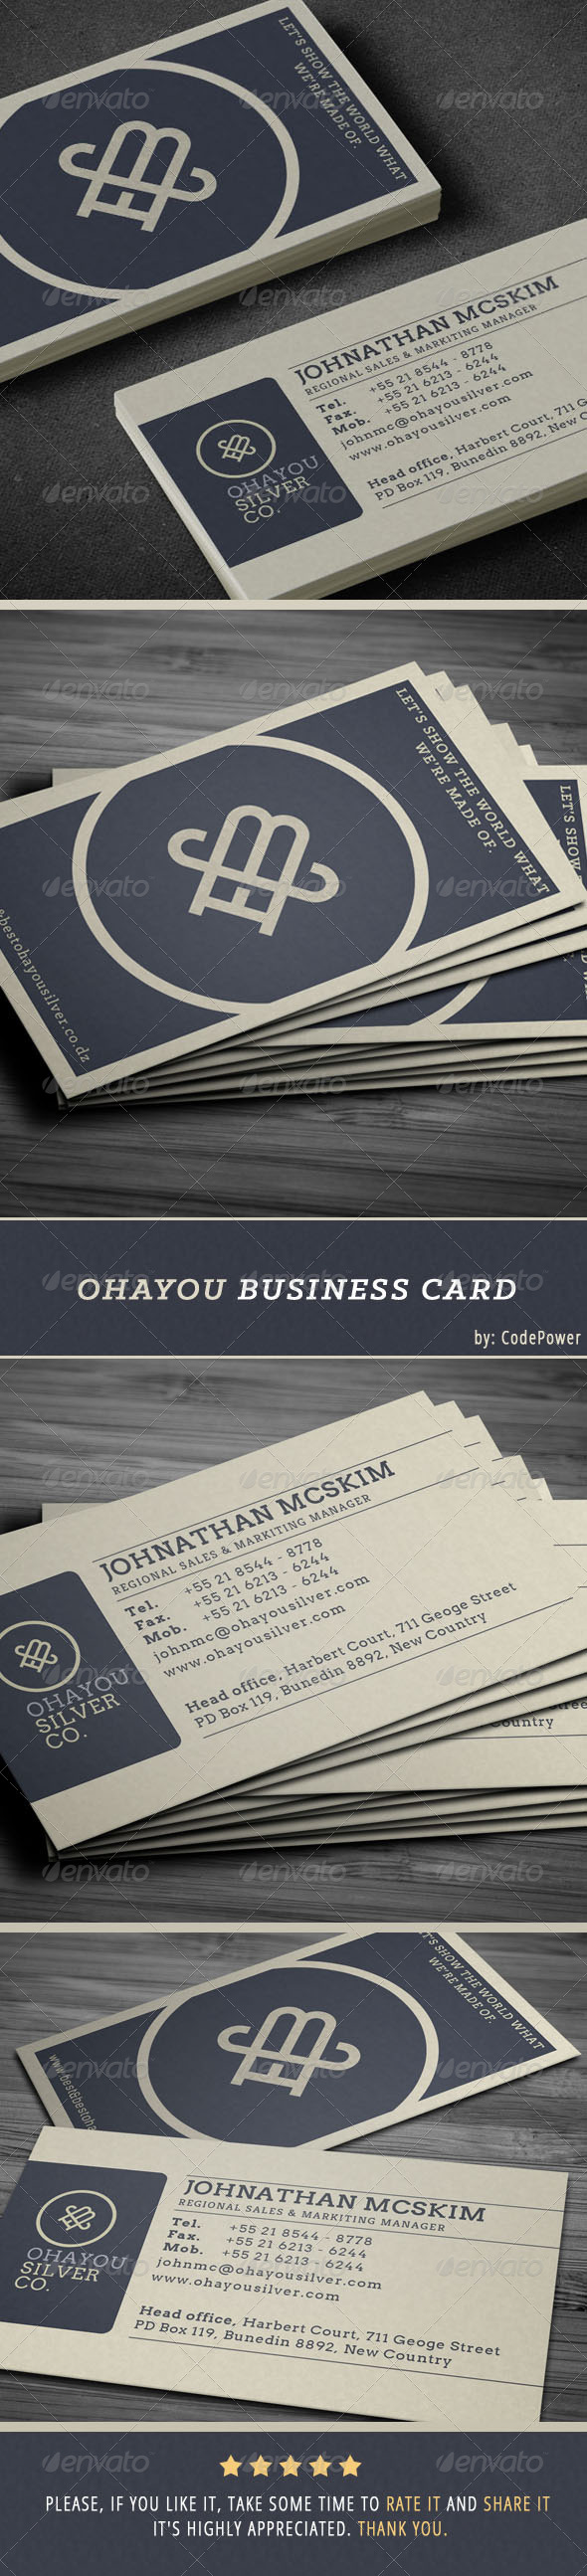 GraphicRiver Ohayou Business Card 6826342